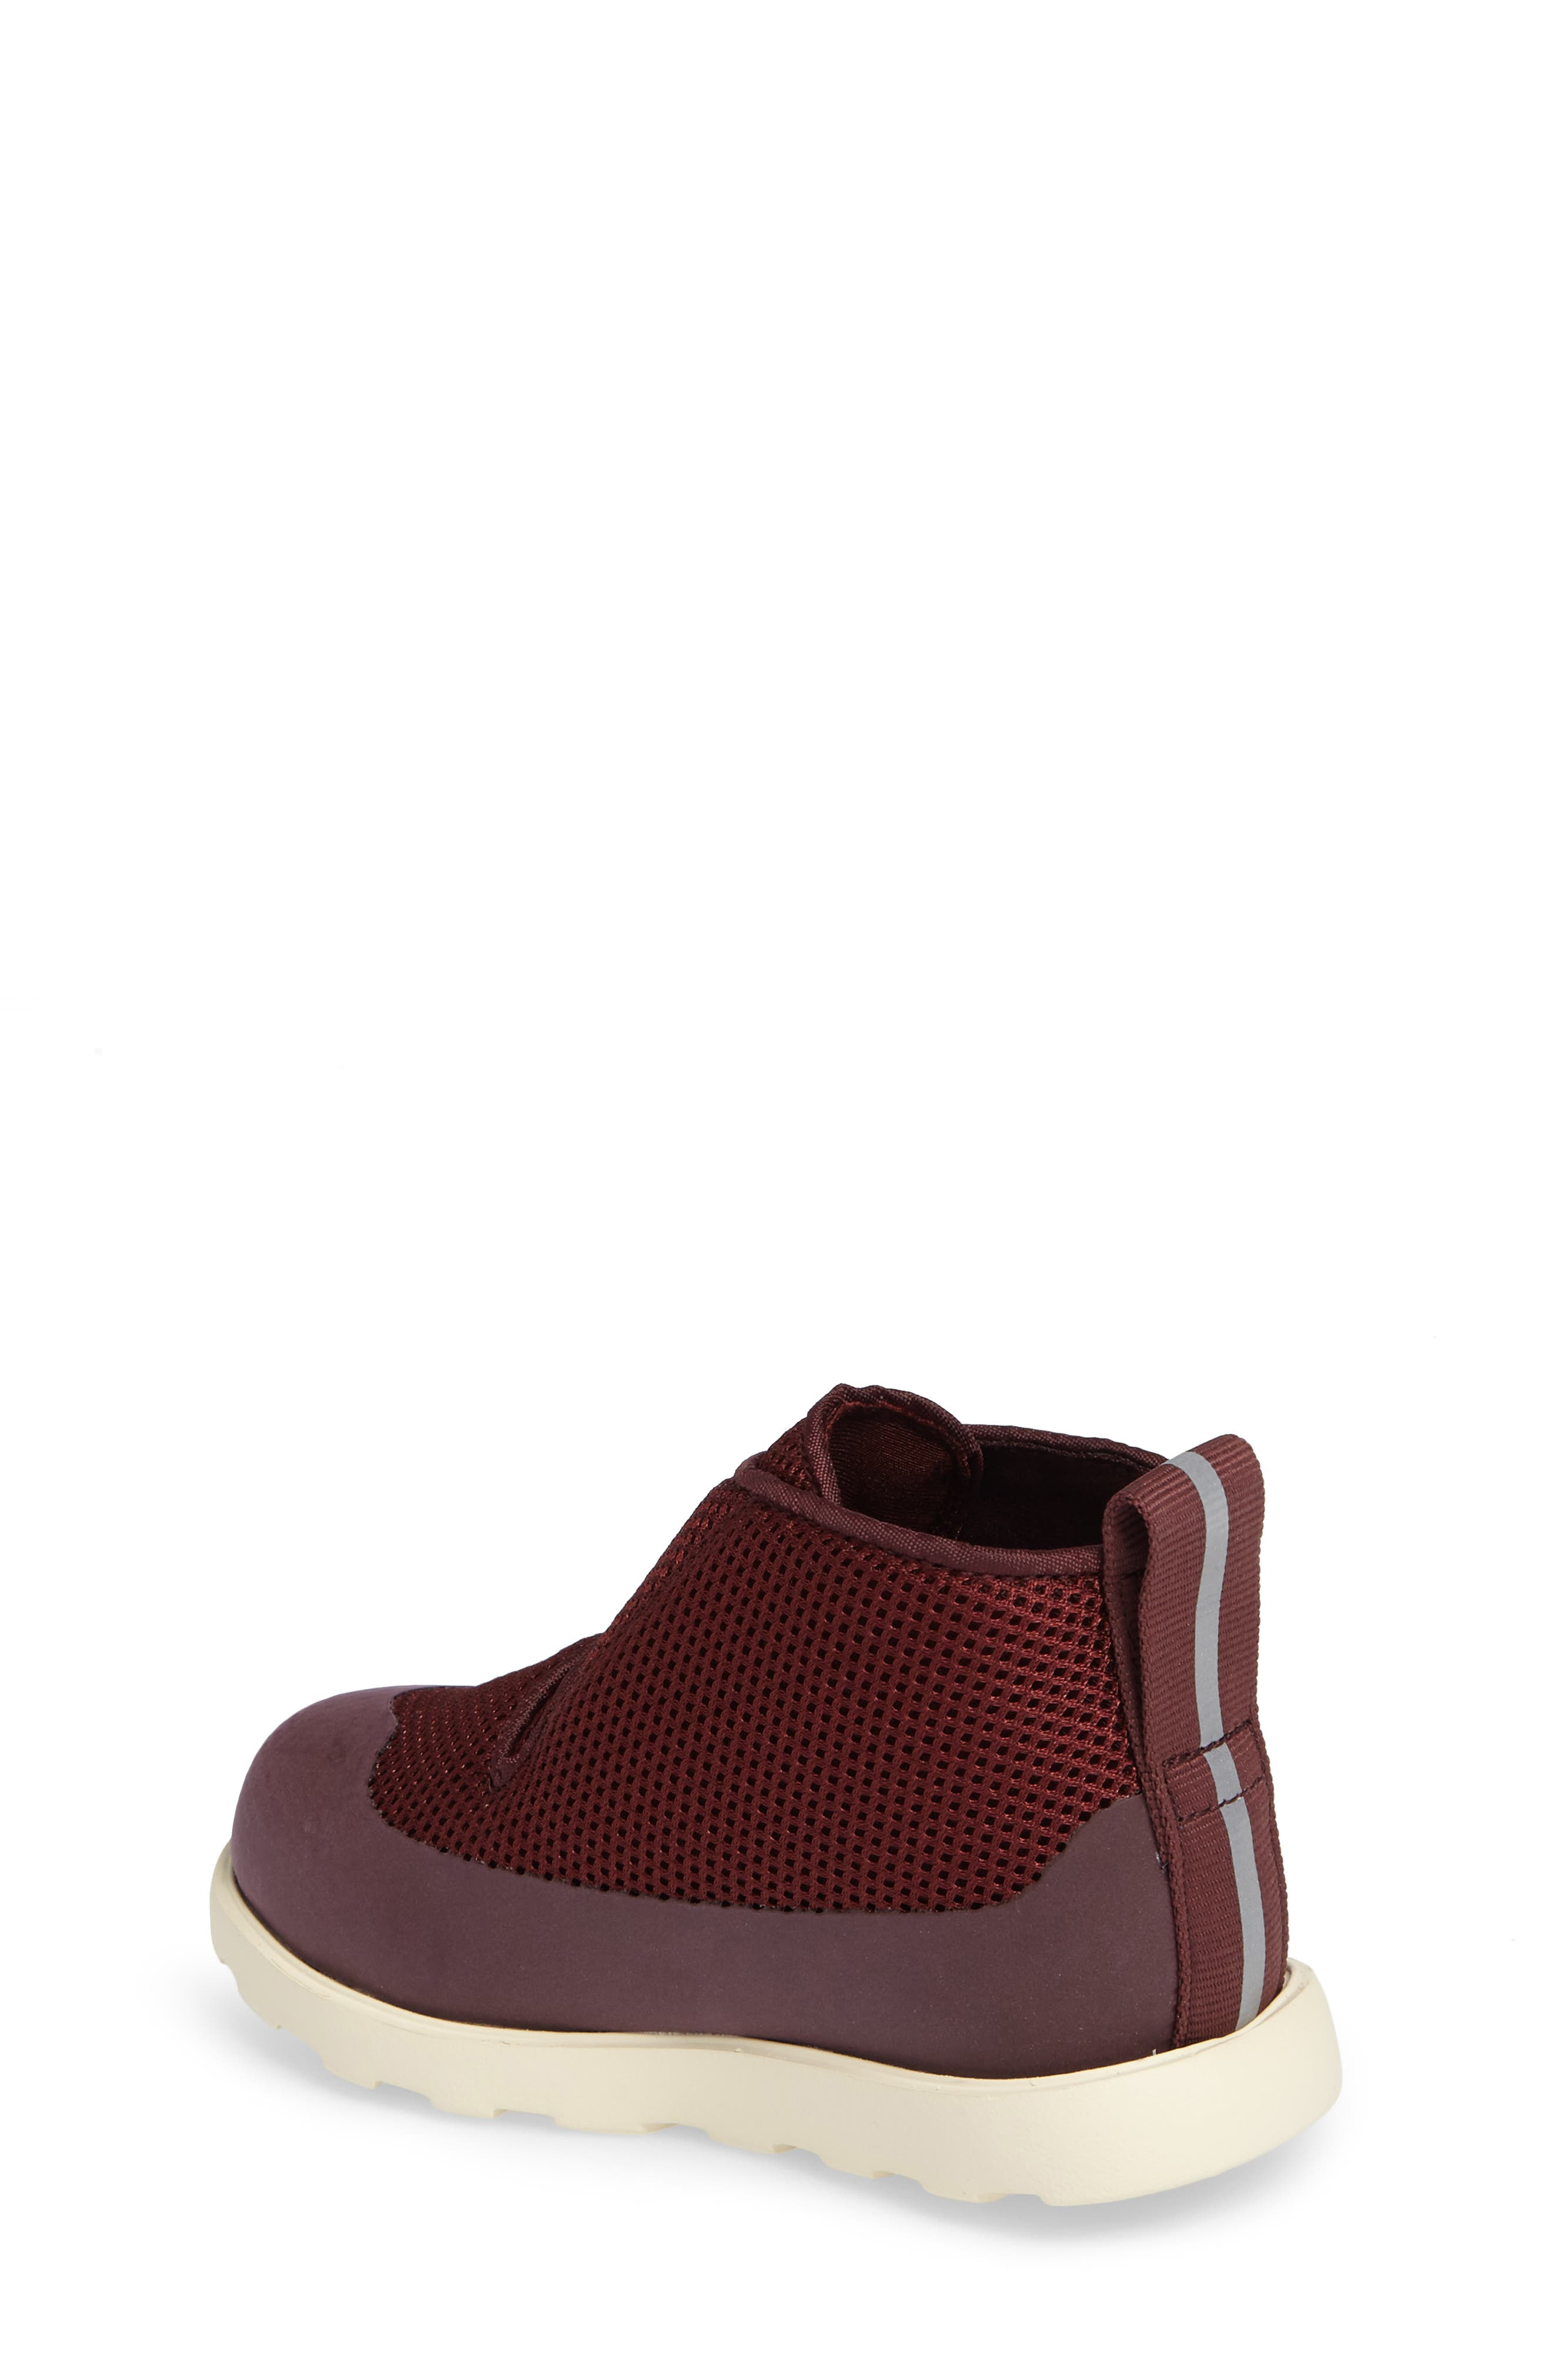 Alternate Image 2  - Native Shoes 'Fitzroy Fast' Water Resistant Boot (Walker & Toddler)